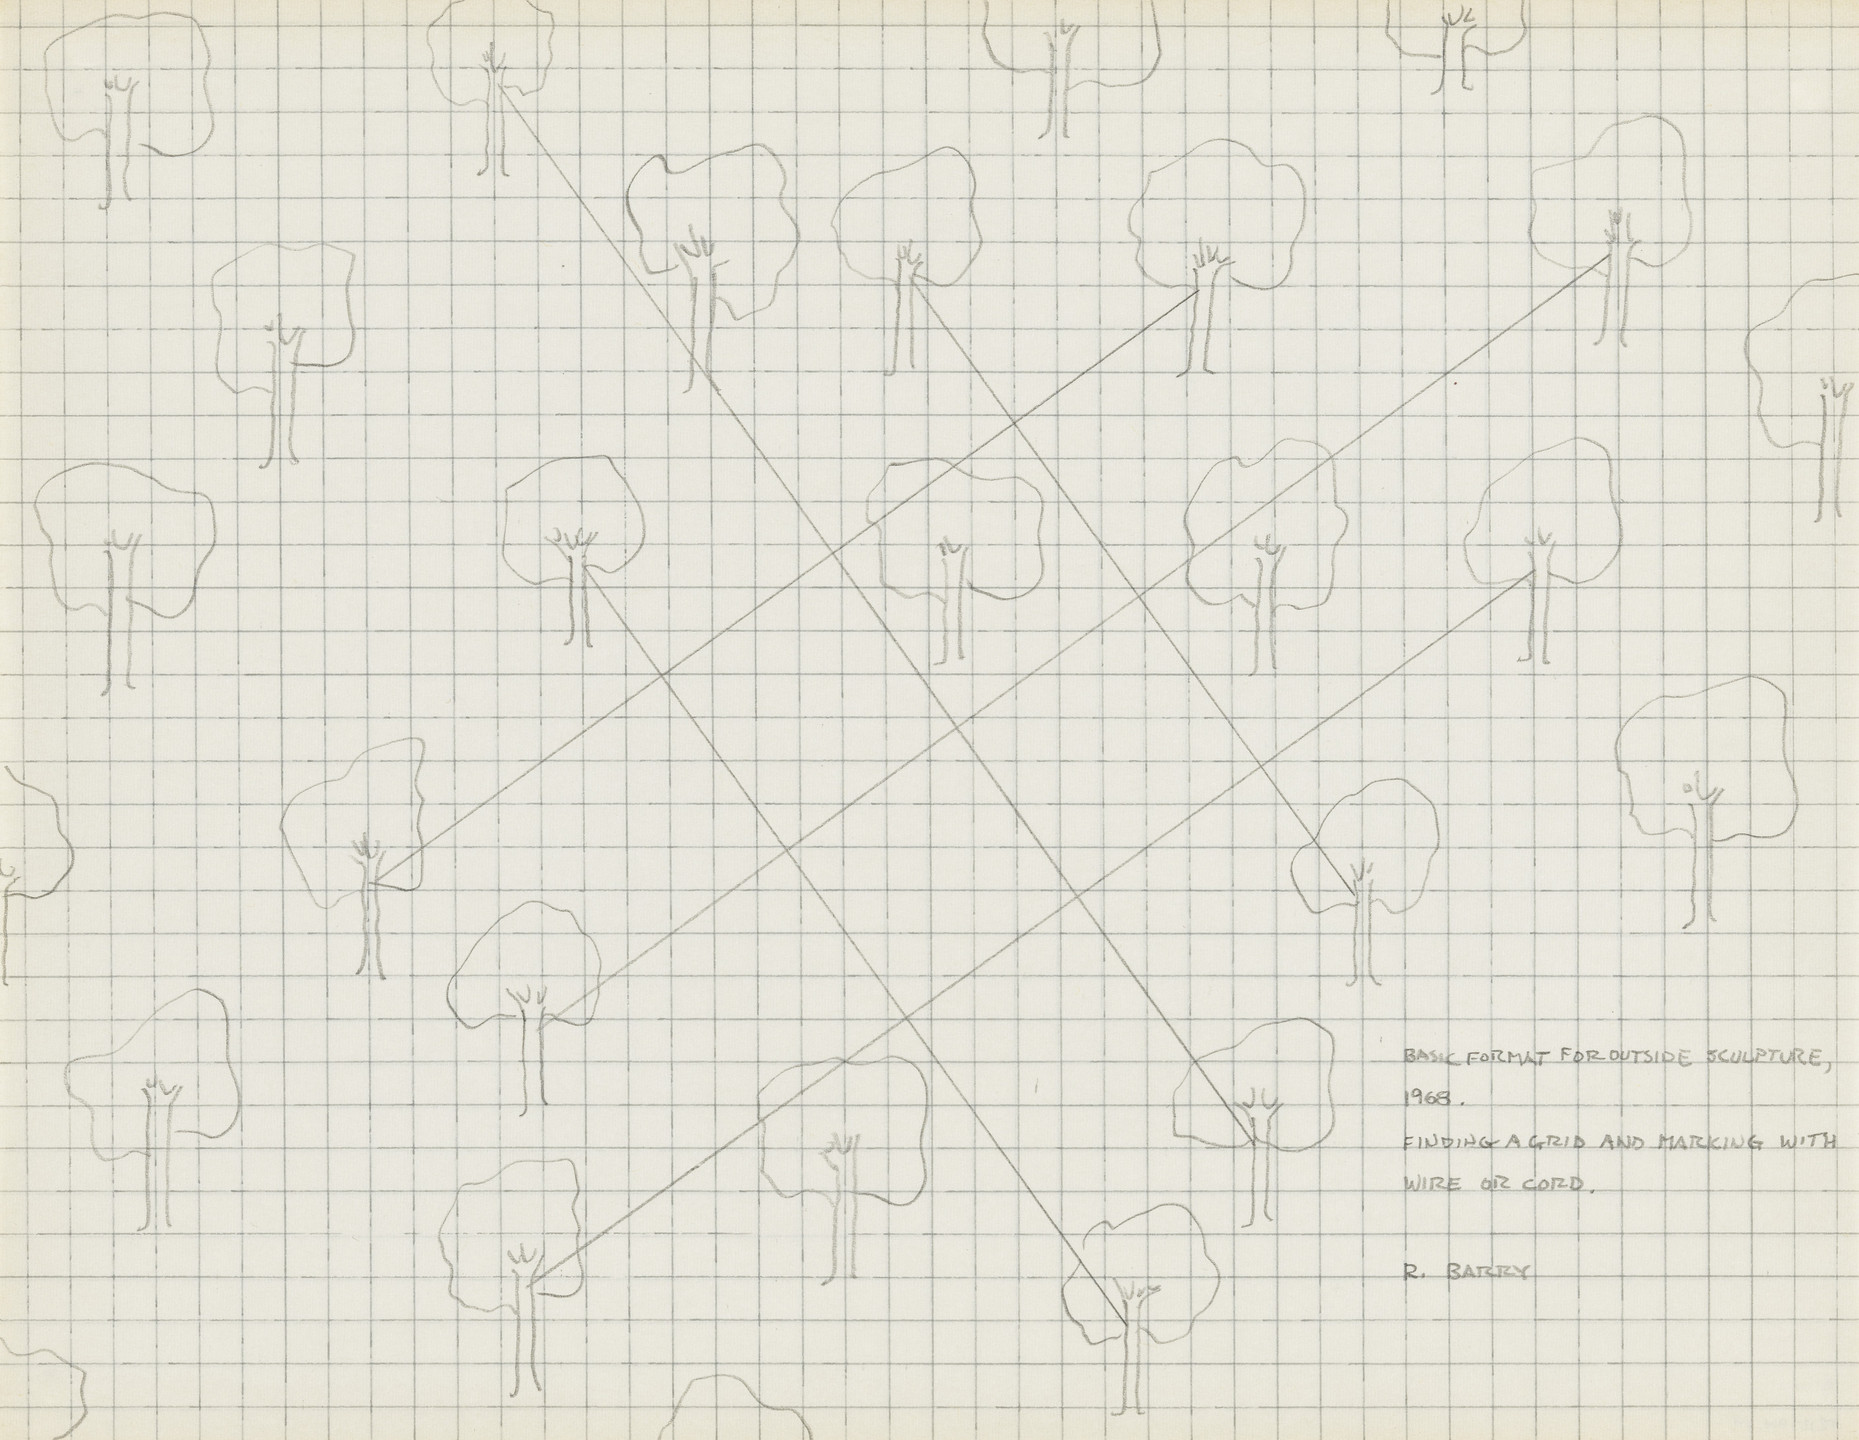 Robert Barry. Basic Format for Outside Sculpture (Finding a Grid and Marking with Wire or Cord). 1968